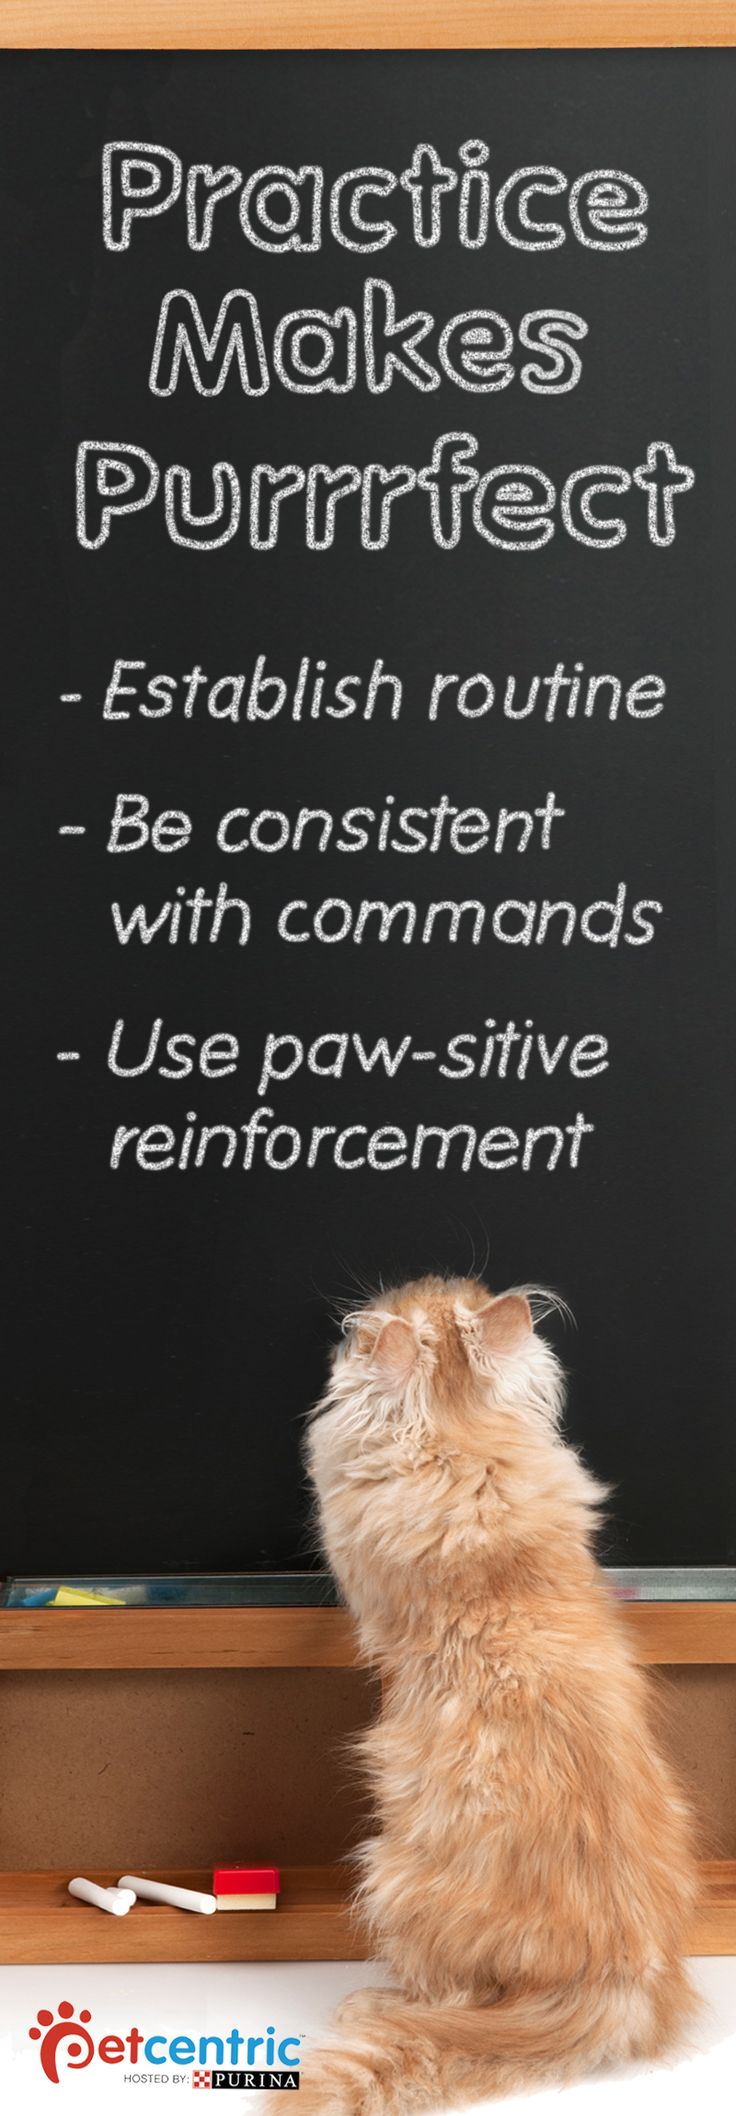 Practice makes purr-fect when training your cat! Pin this now and click through to Petcentric.com for simple tips your entire family can use to work as a team while training your pet.